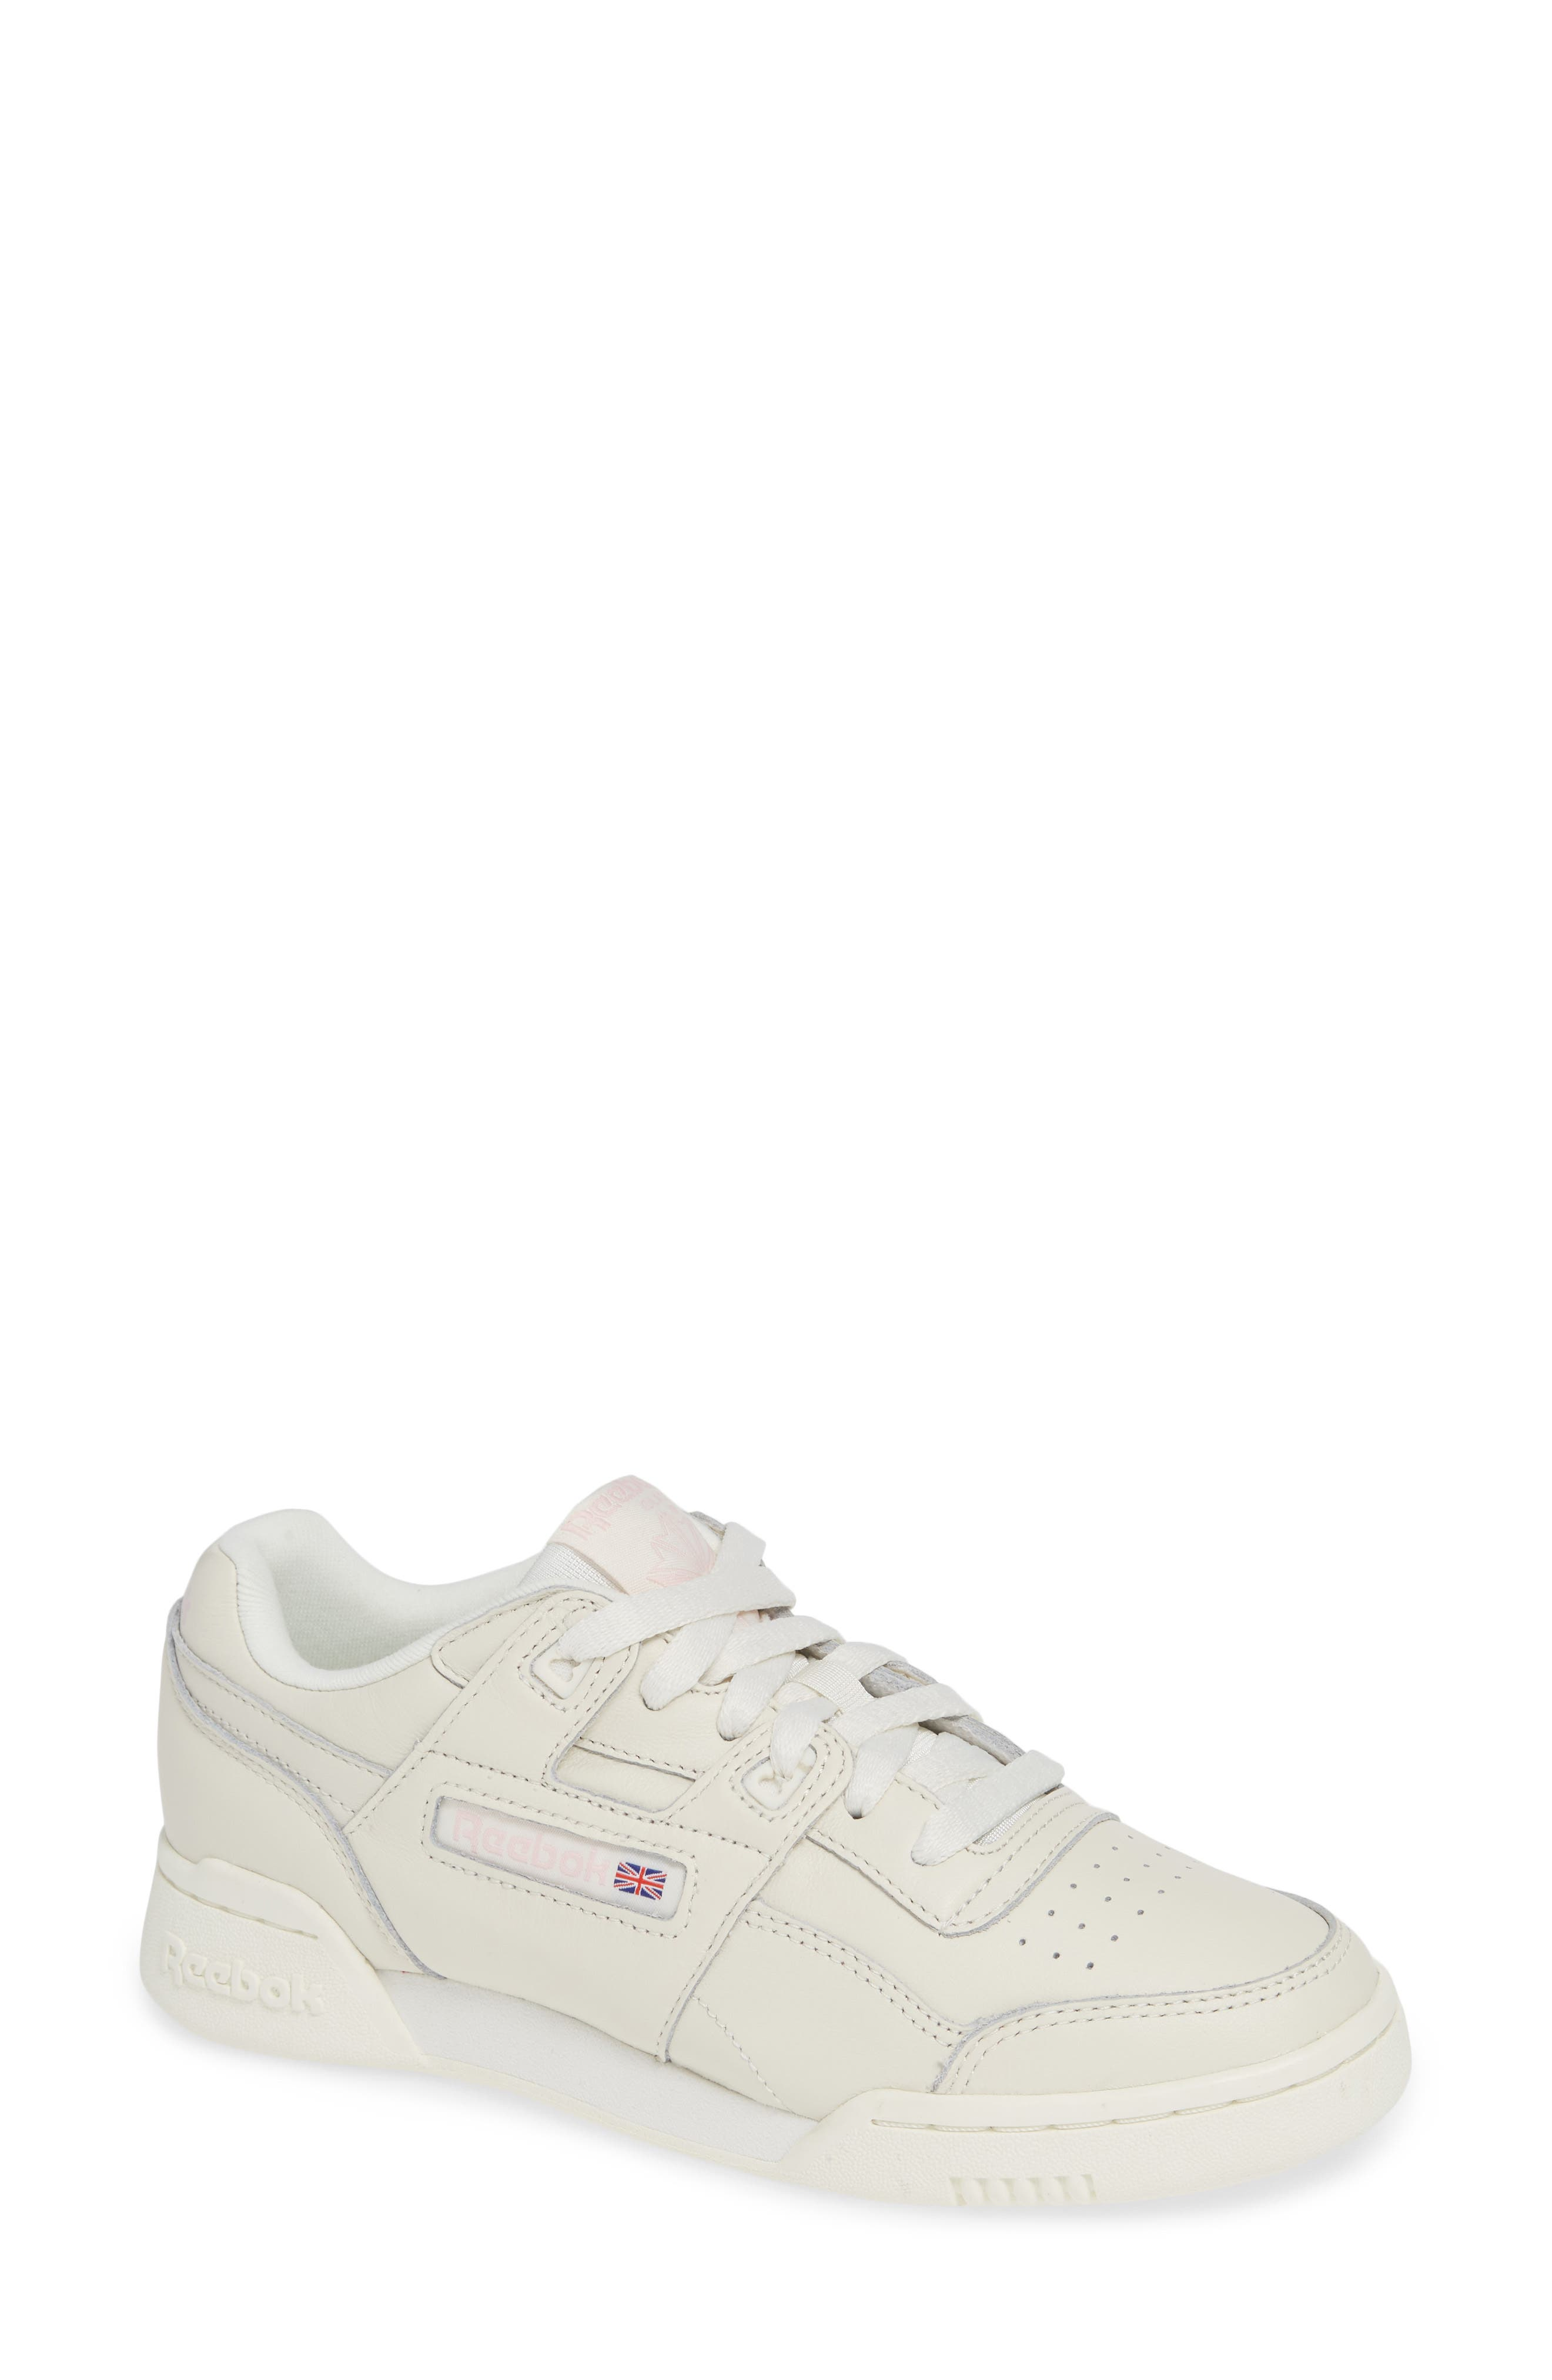 Workout Low Plus Sneaker,                         Main,                         color, WHITE/ PRACTICAL PINK